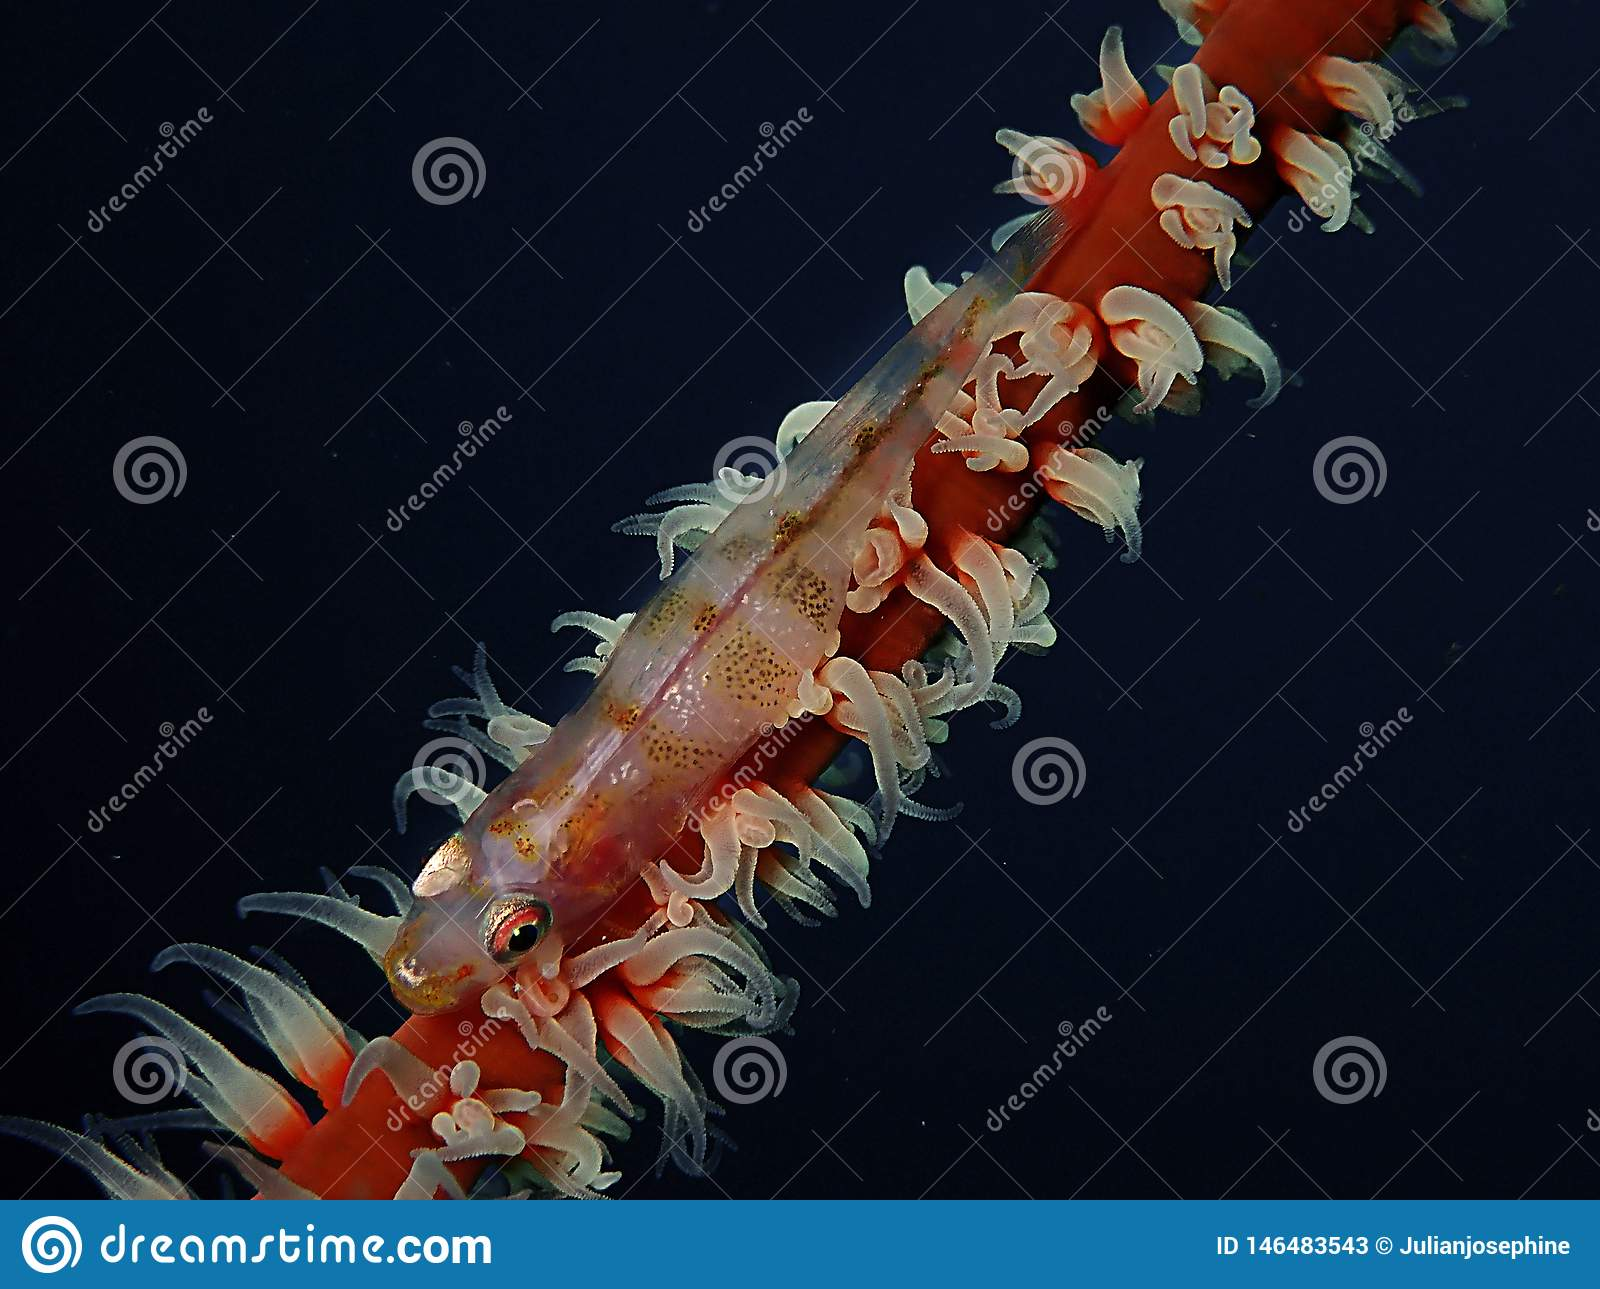 Closeup and macro shot of whip coral goby during leisure dive in Sabah, Borneo.